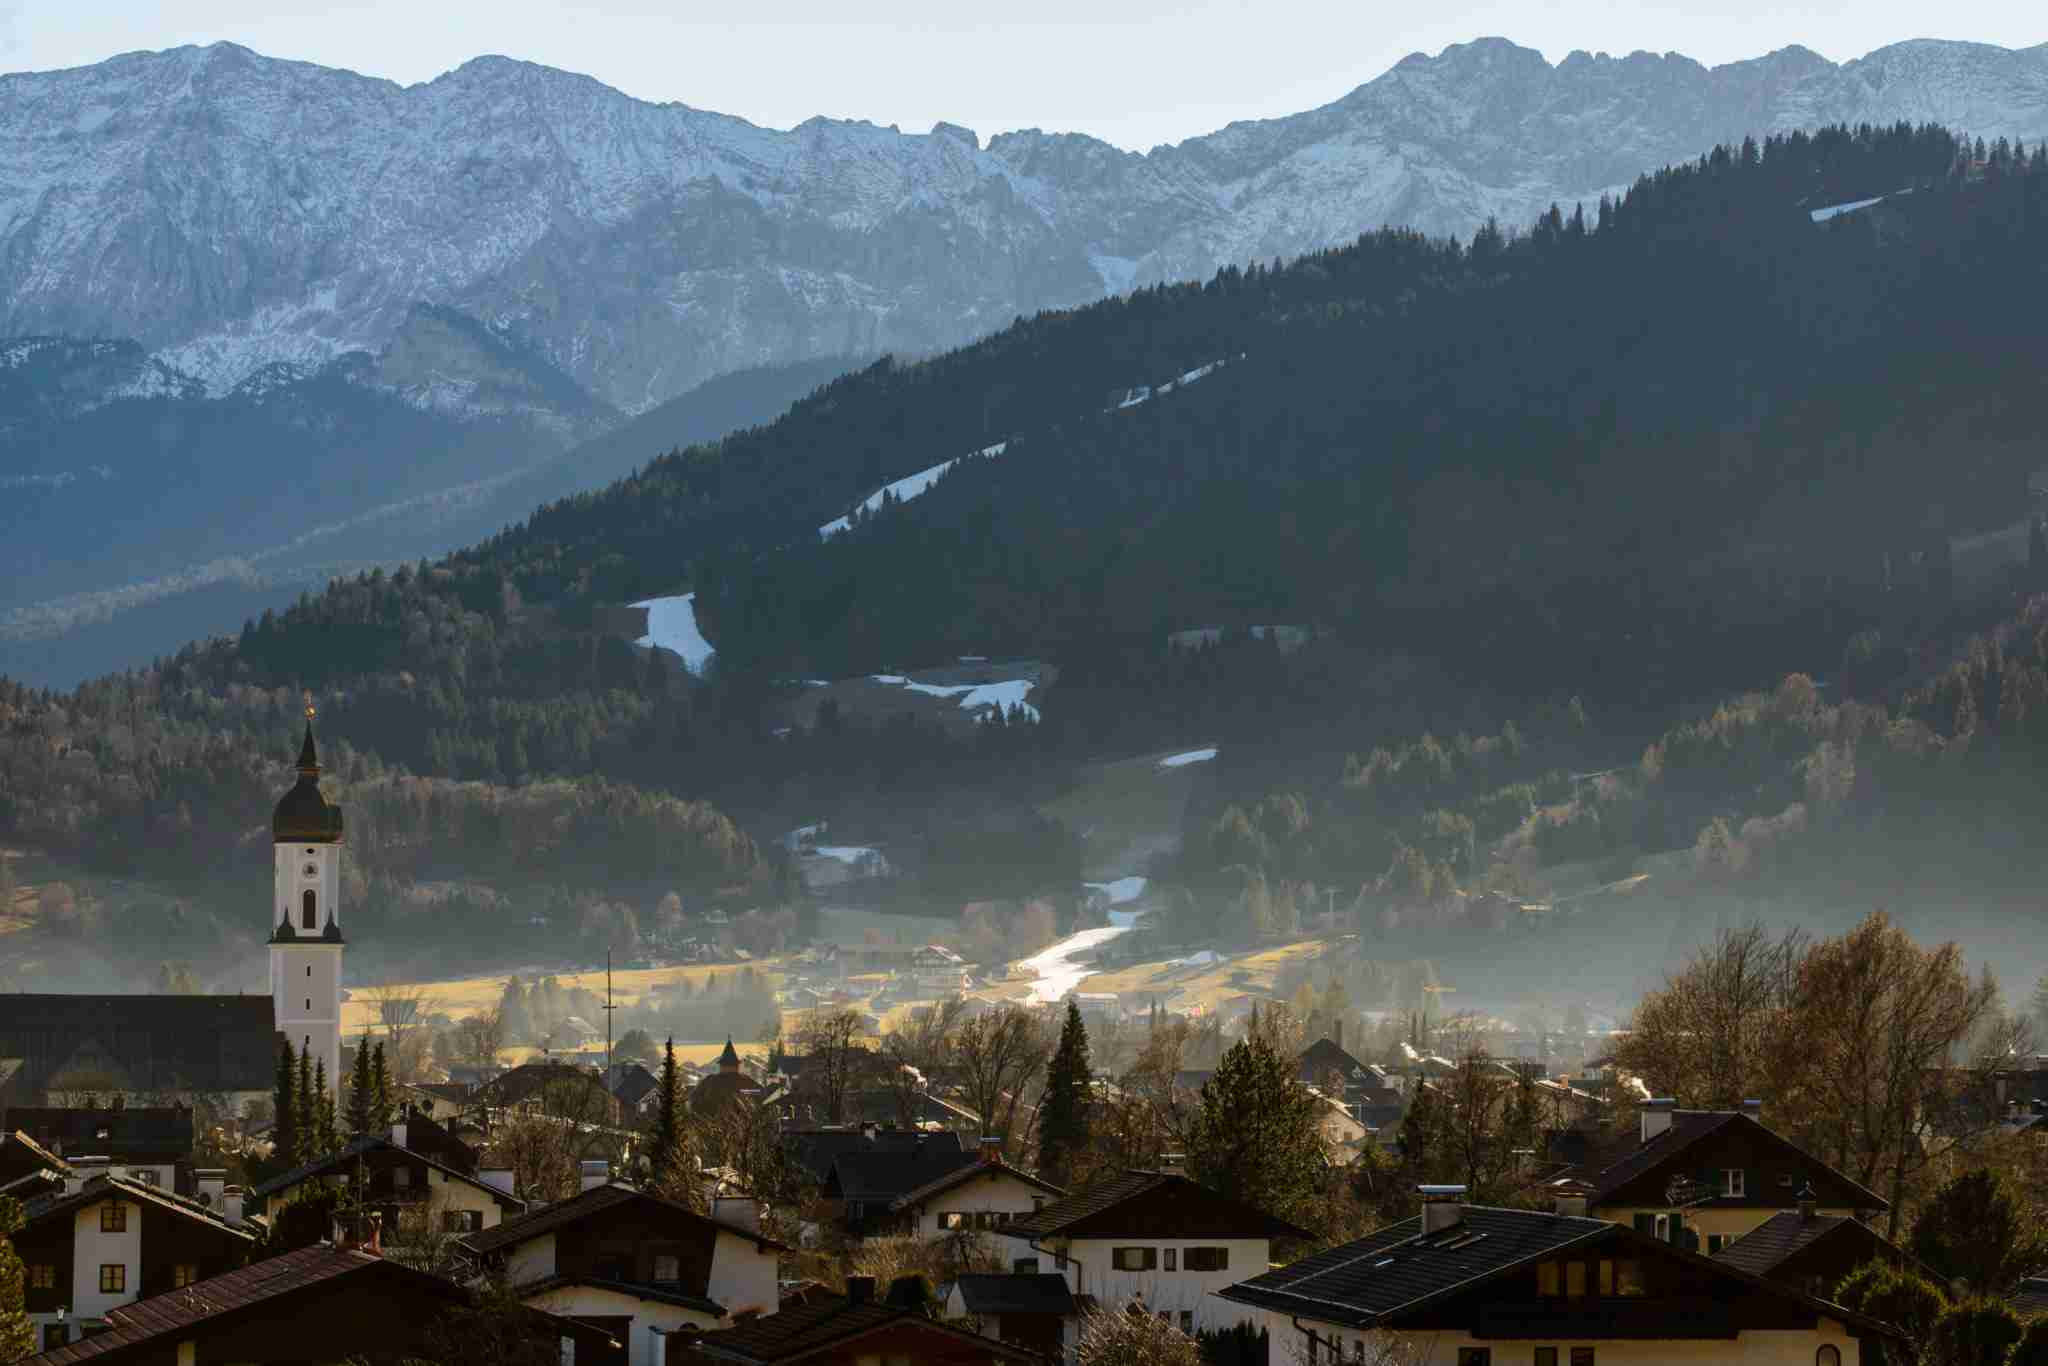 GARMISCH-PARTENKIRCHEN, GERMANY - DECEMBER 28: Patches of man-made snow cover the slopes of Garmisch Classic Ski area on a sunny day with temperatures of up to nine degrees Celsius in the German Alps on December 28, 2015 near Garmisch-Partenkirchen, Germany. Temperatures across Europe remain unseasonably high and many ski resorts at lower altitudes are facing a shortened ski season, if any season at all. (Photo by Philipp Guelland/Getty Images)